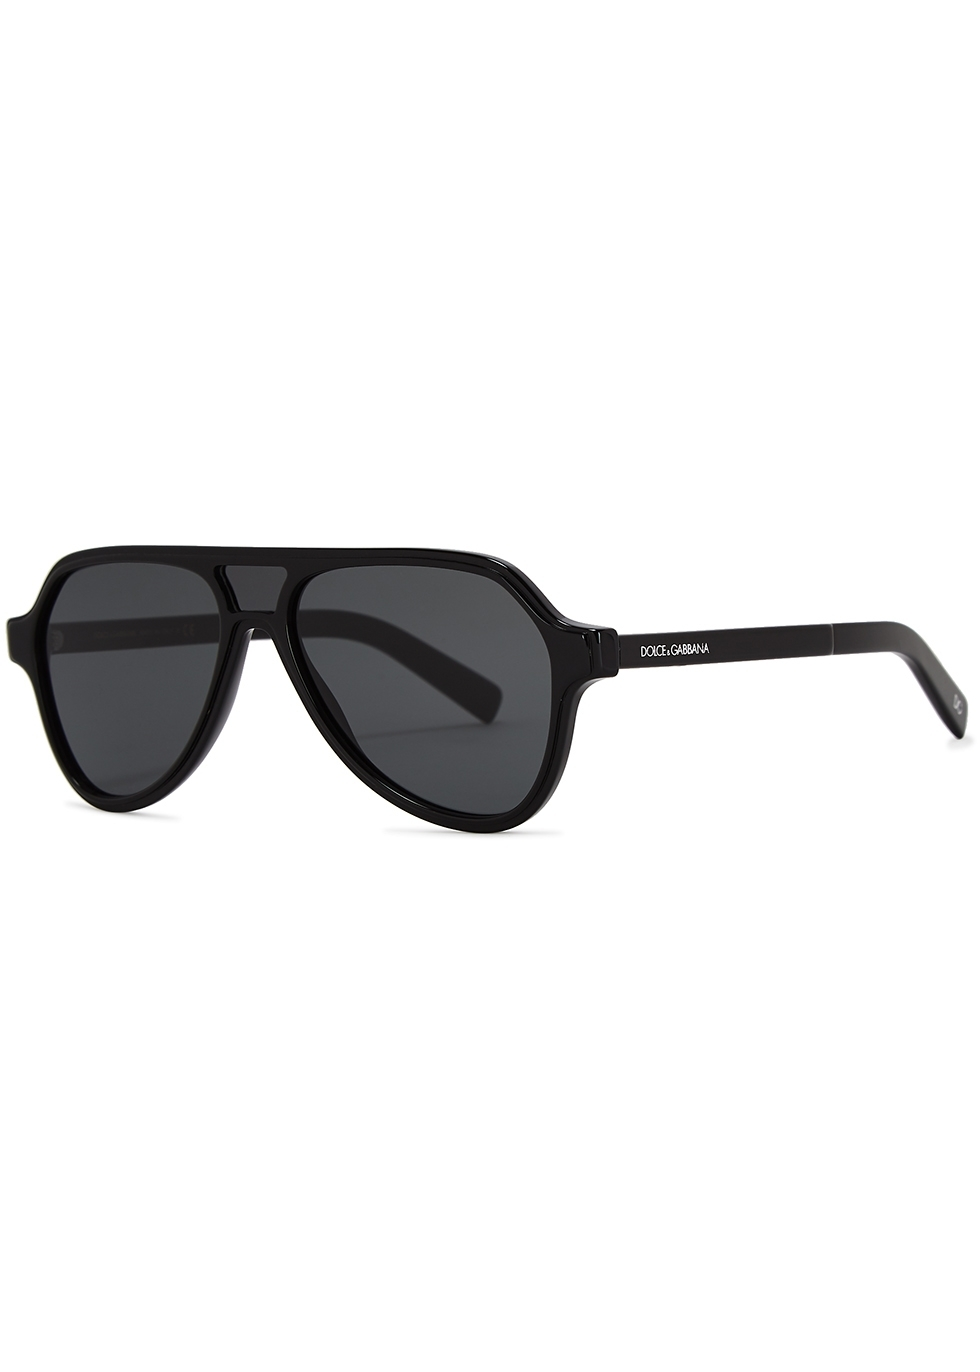 b3bb05c7d46b0 Men s Designer Sunglasses   Eyewear - Harvey Nichols